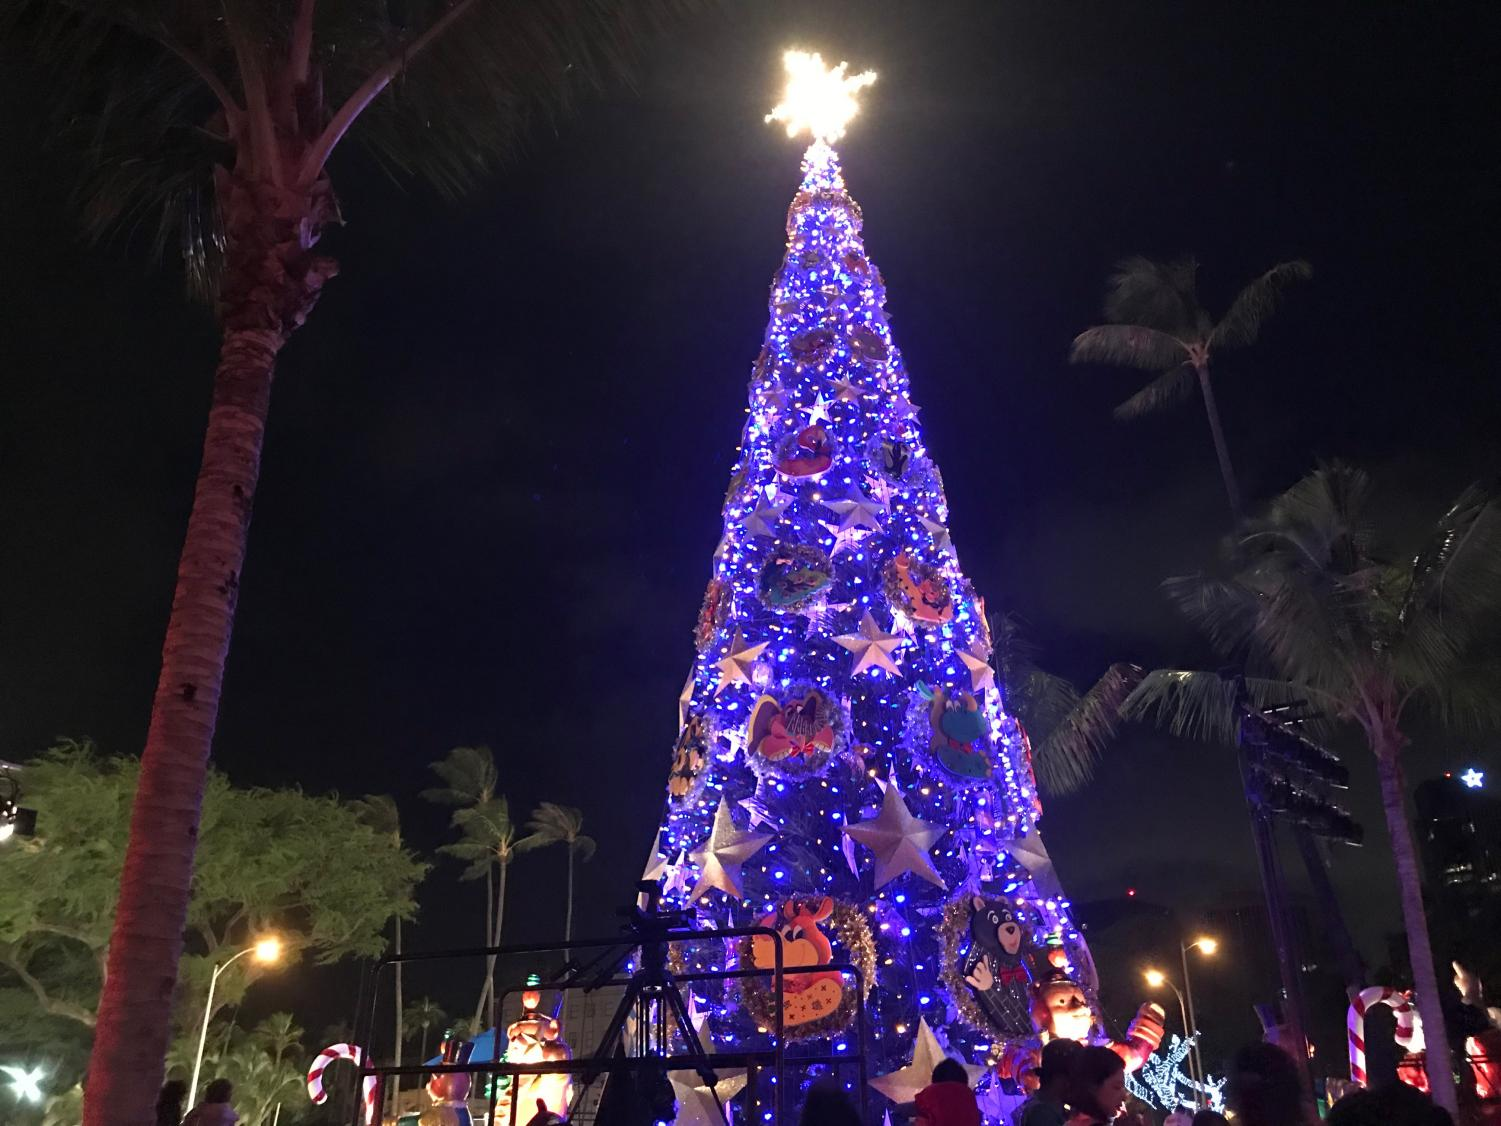 the city holiday tree is adorned with wreaths and silver stars